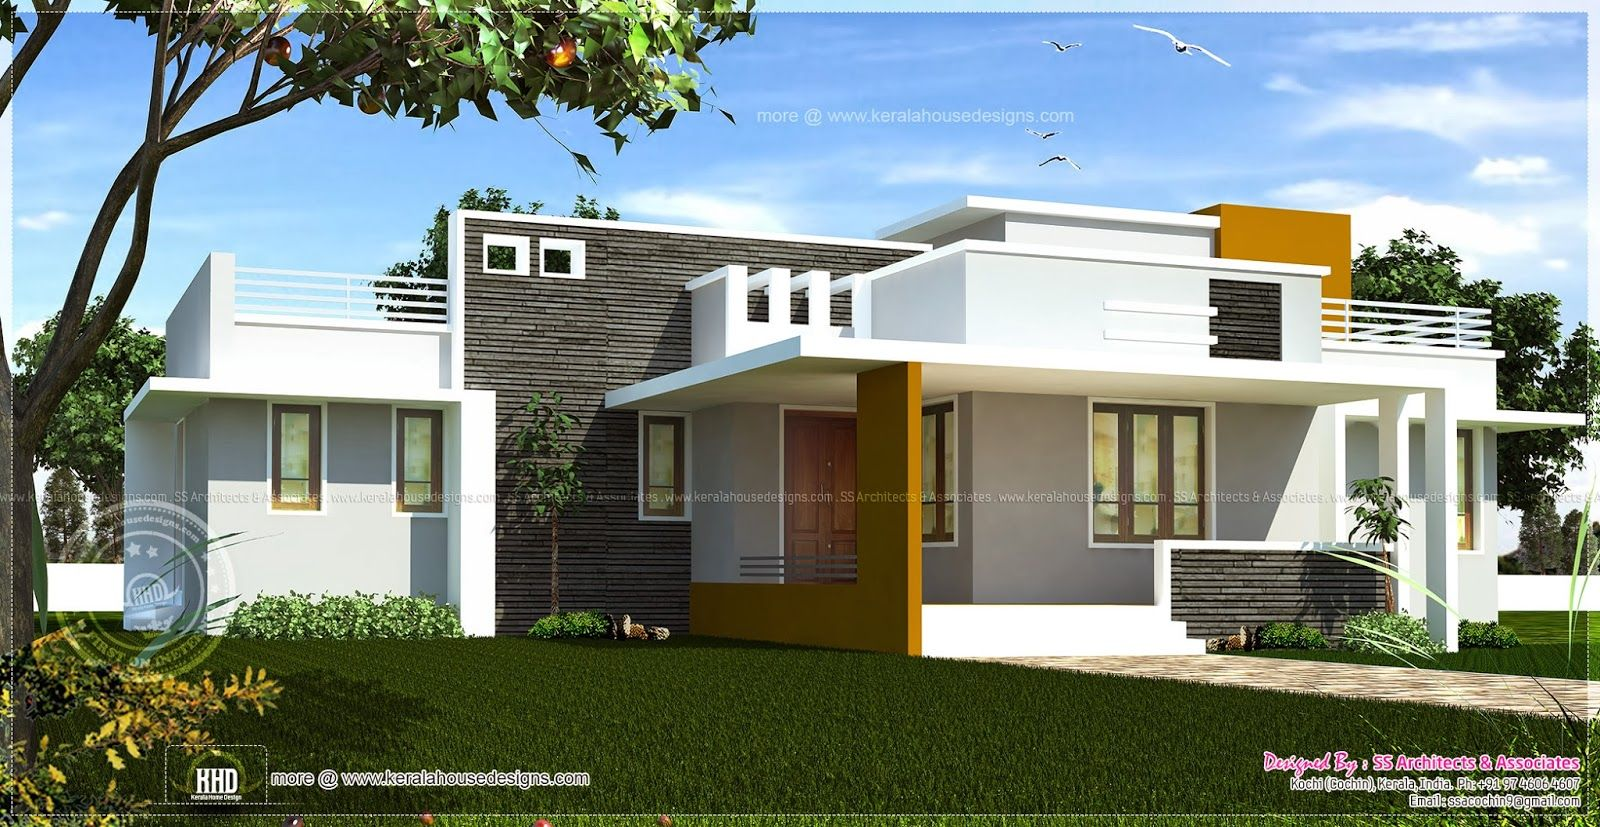 Excellent single home designs single floor contemporary for Modern house in kerala